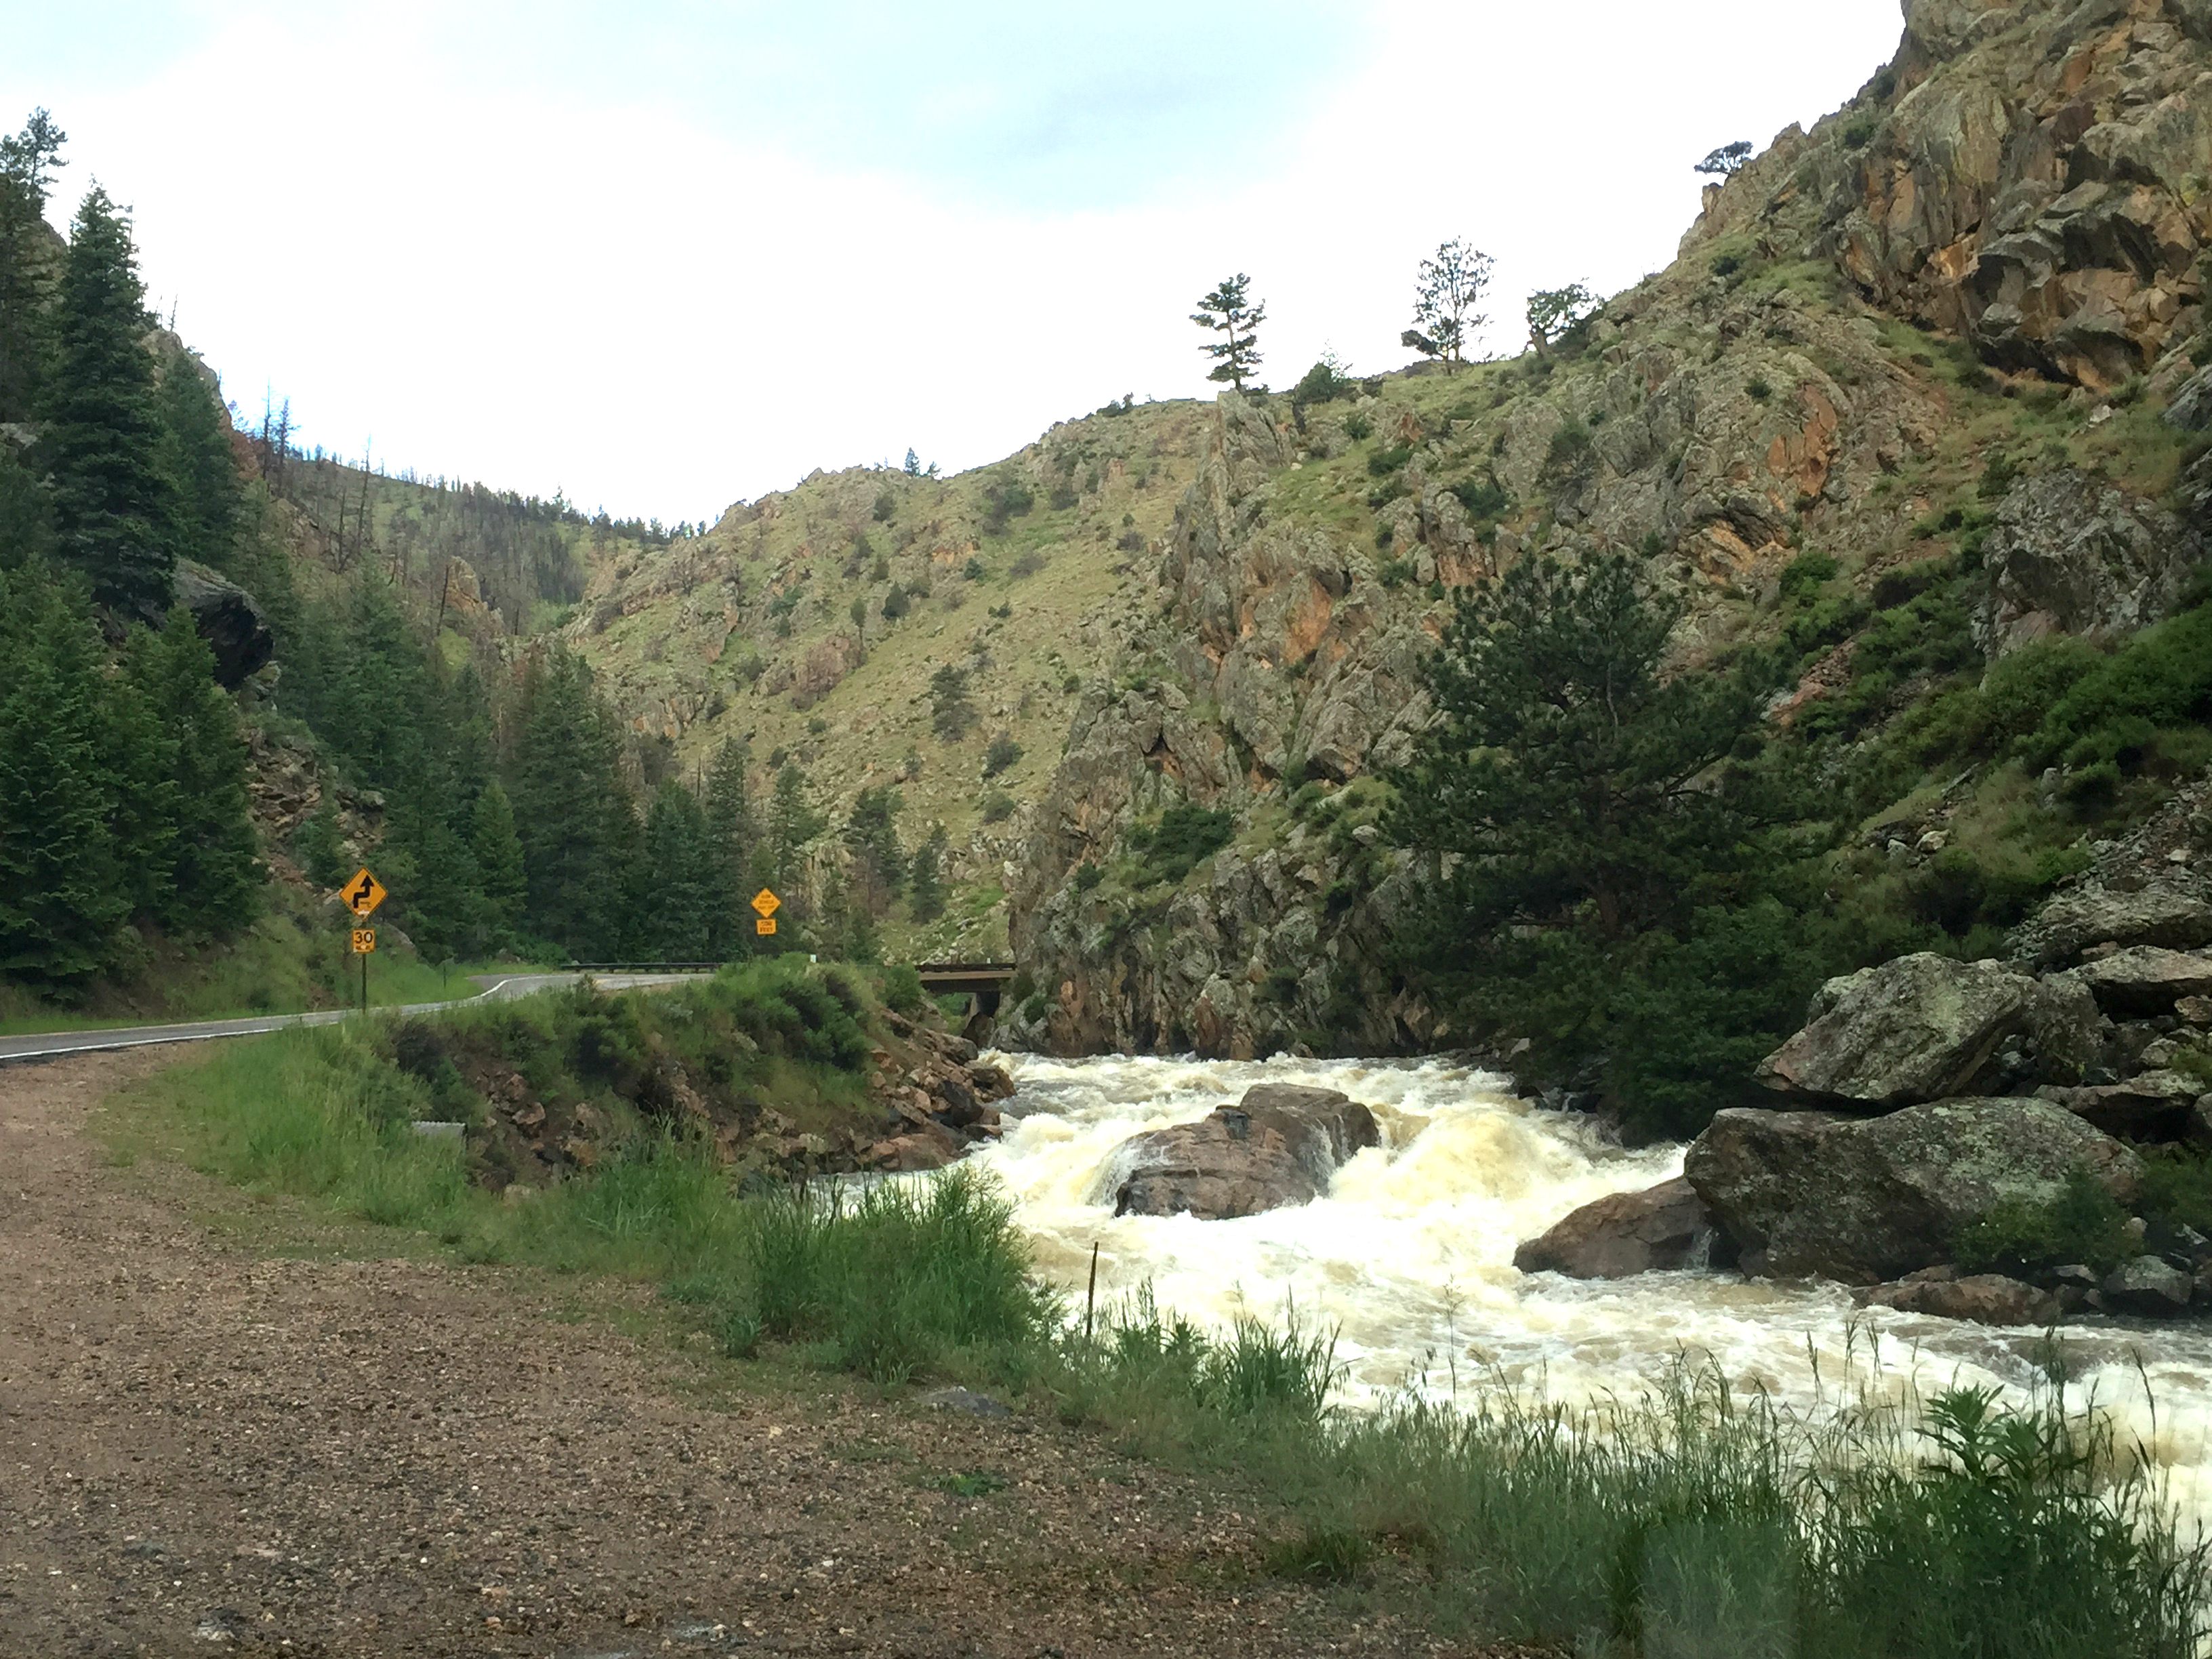 Photo: Poudre River, Northern Colorado